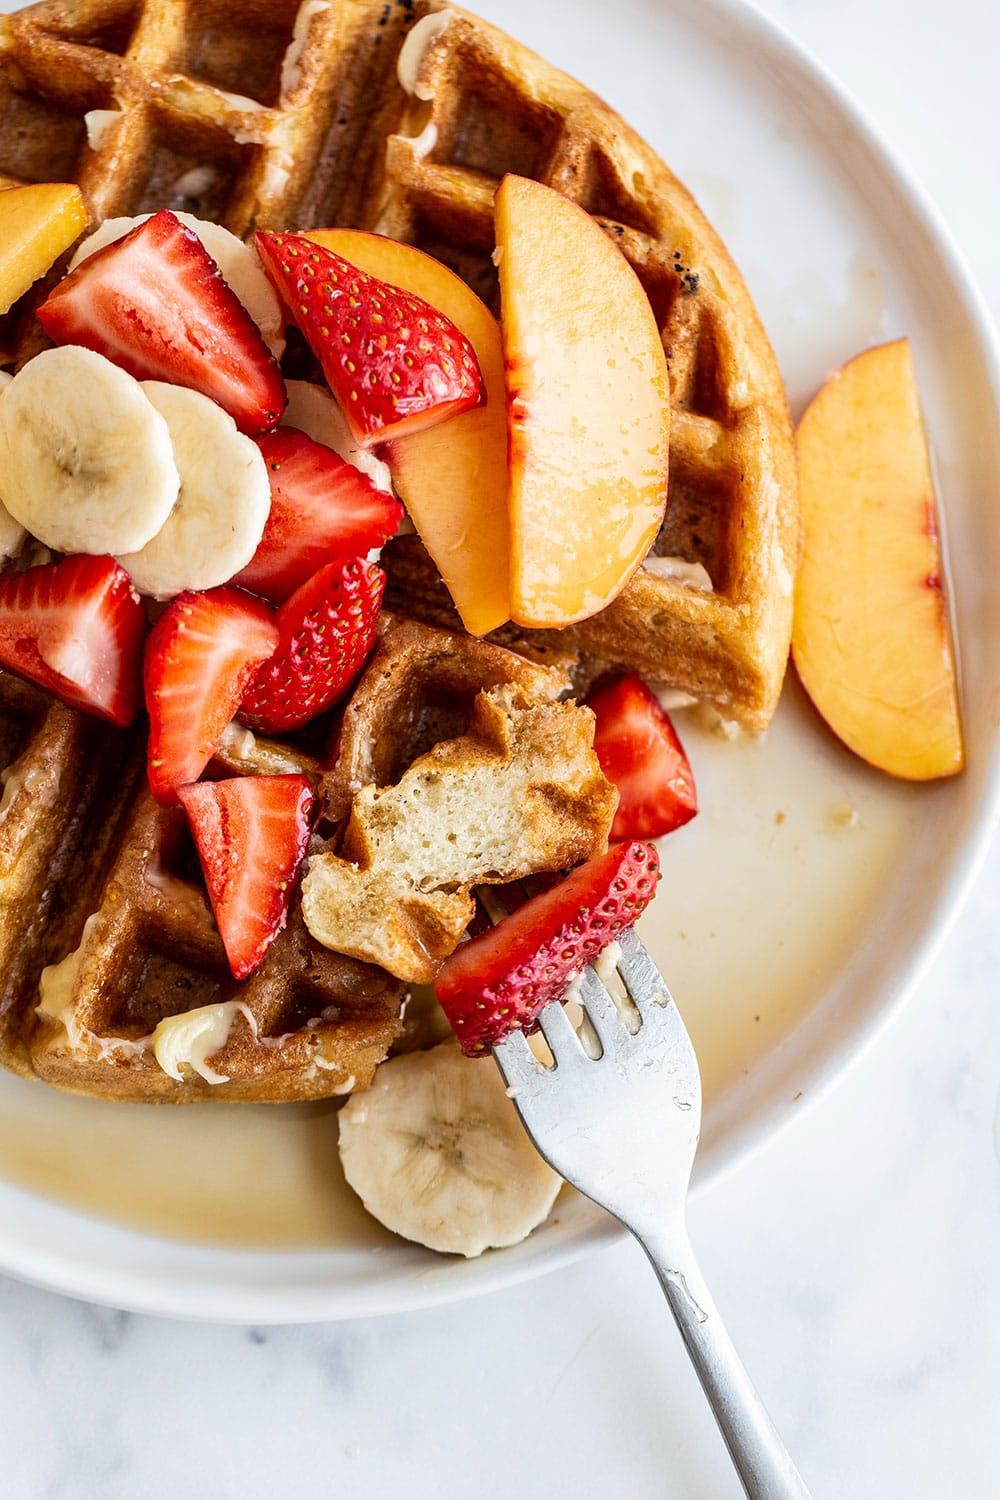 Waffle on a plate with maple syrup and fresh fruit